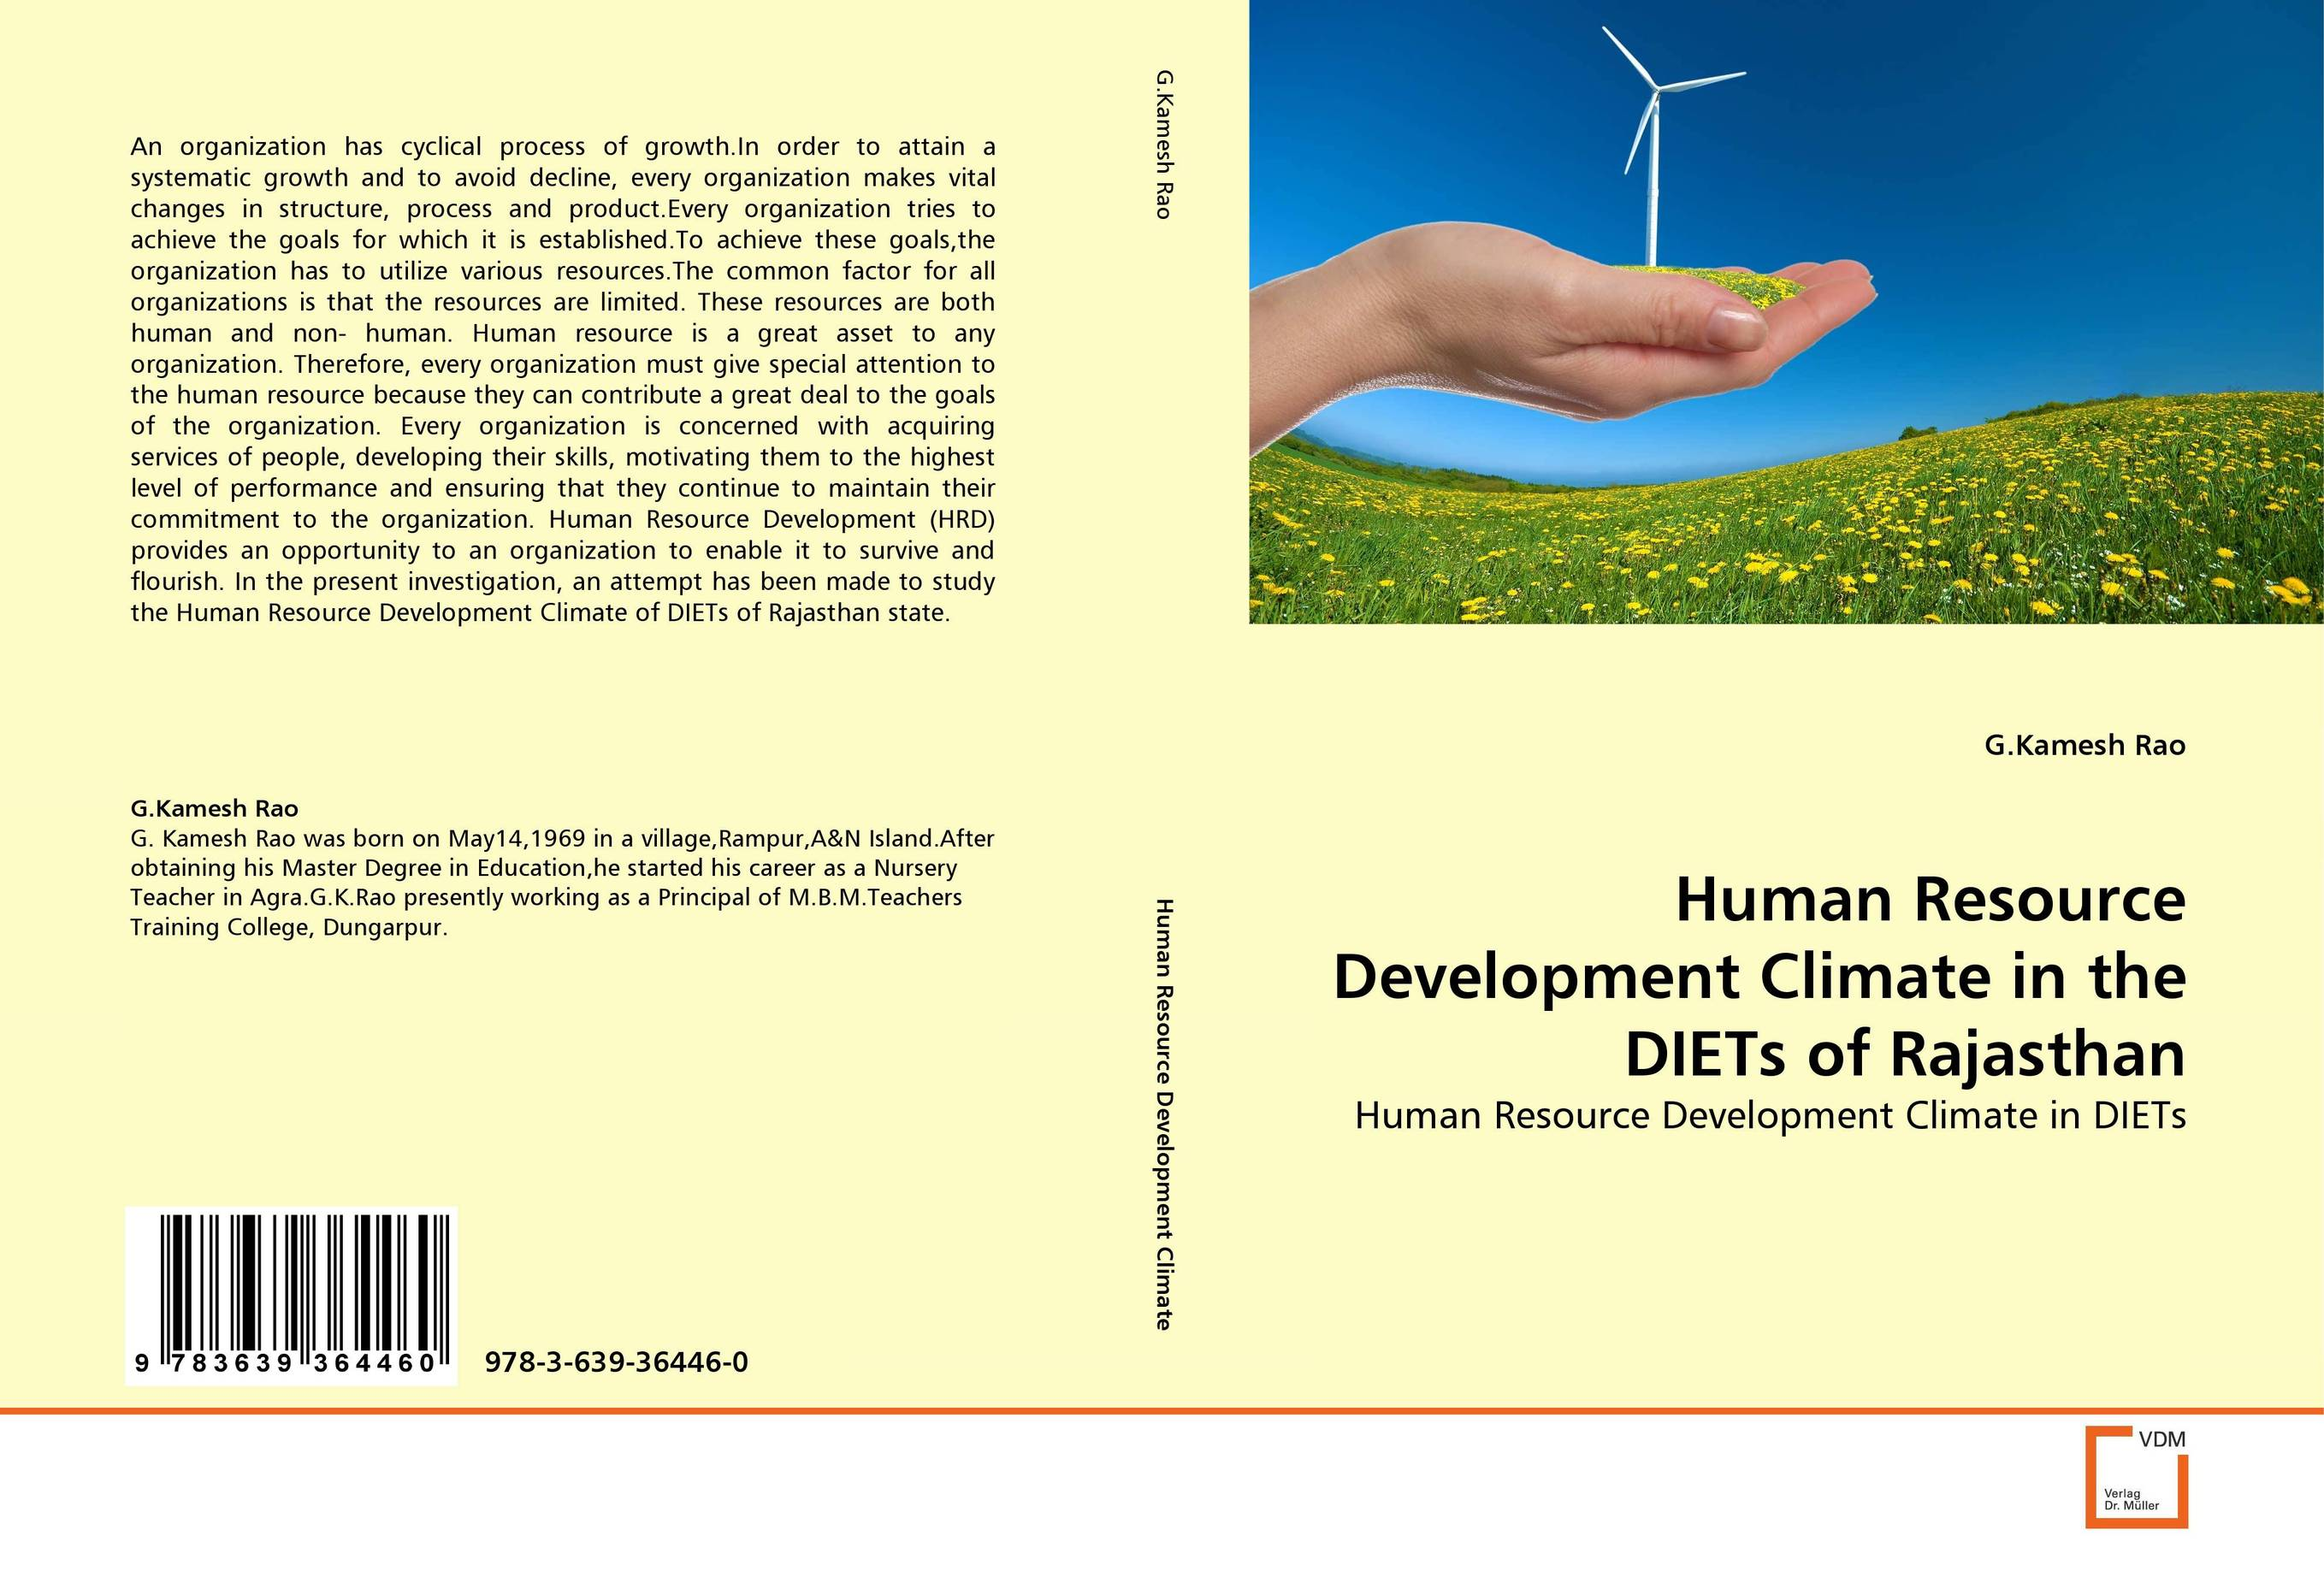 Human Resource Development Climate in the DIETs of Rajasthan silent spill – the organization of an industrial crisis